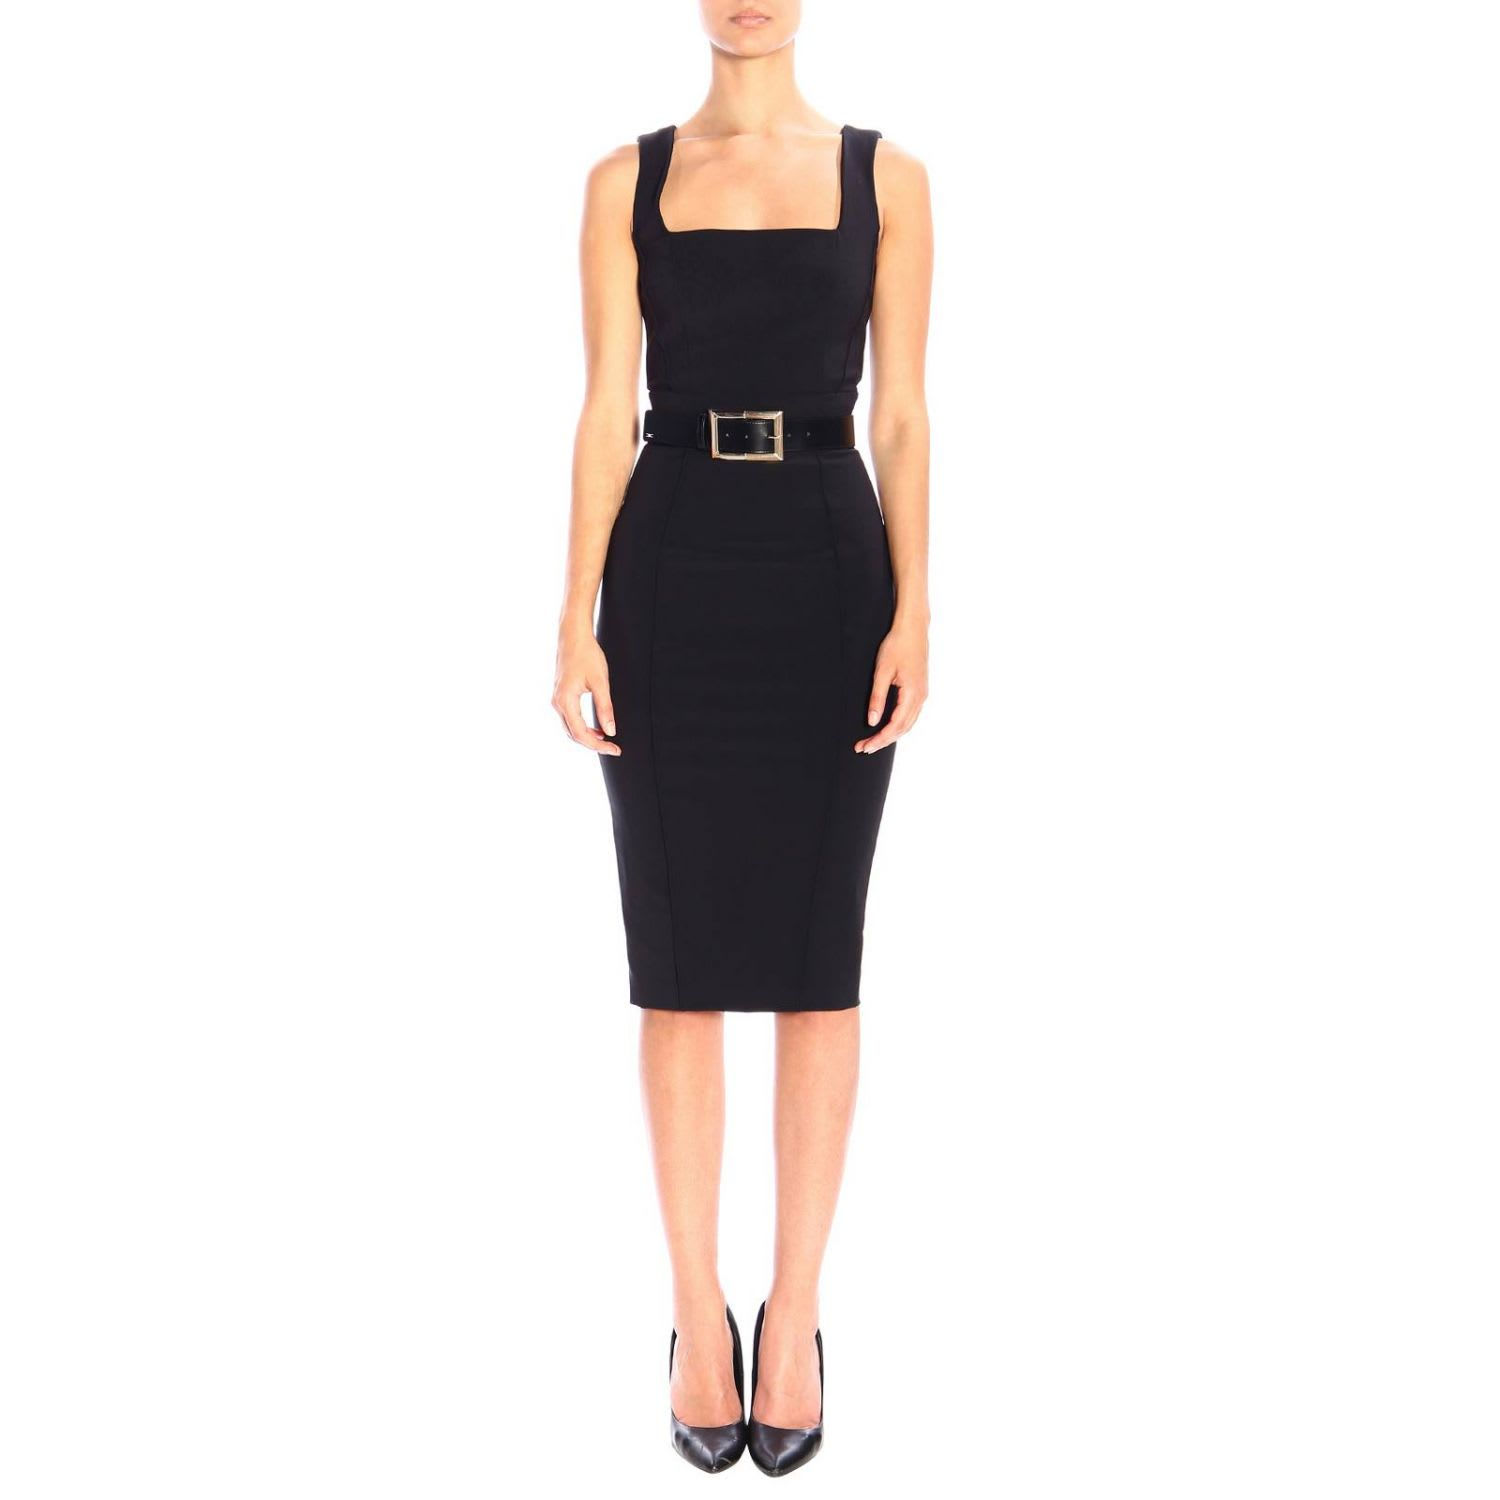 Elisabetta Franchi Dress Elisabetta Franchi Pencil Dress With Belt